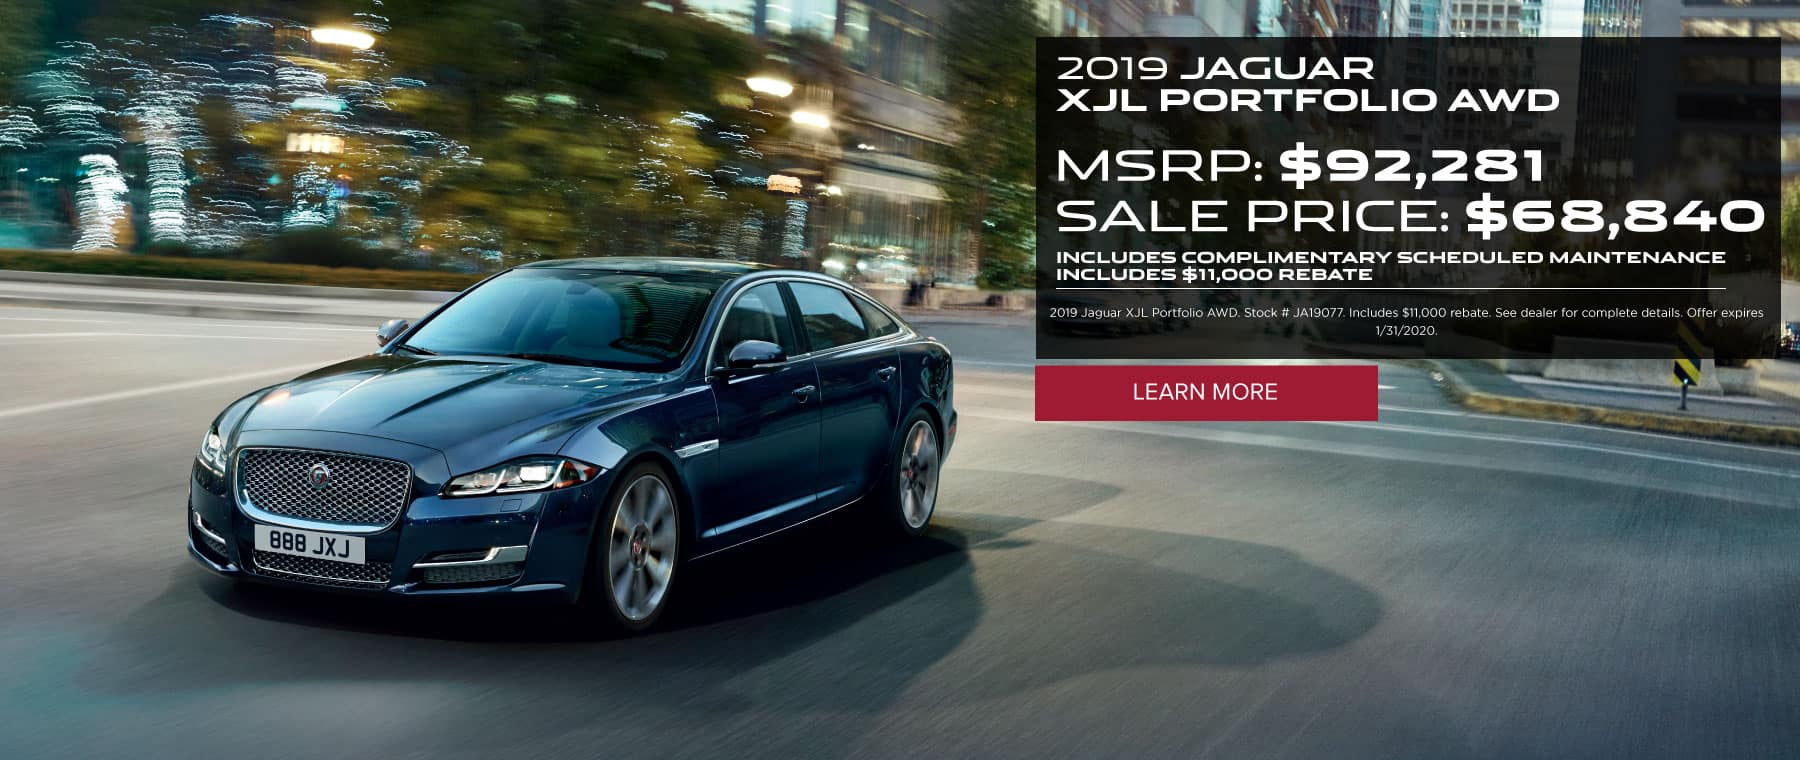 2019 JAGUAR XJL PORTFOLIO AWD MSRP: $92,281 SALE PRICE: $68,840 INCLUDES COMPLIMENTARY SCHEDULED MAINTENANCE INCLUDES $11,000 REBATE 2019 Jaguar XJL Portfolio AWD. Stock # JA19077. Includes $11,000 rebate. See dealer for complete details. Offer expires 1/31/2020. Click to learn more. Dark blue XJL in the city.